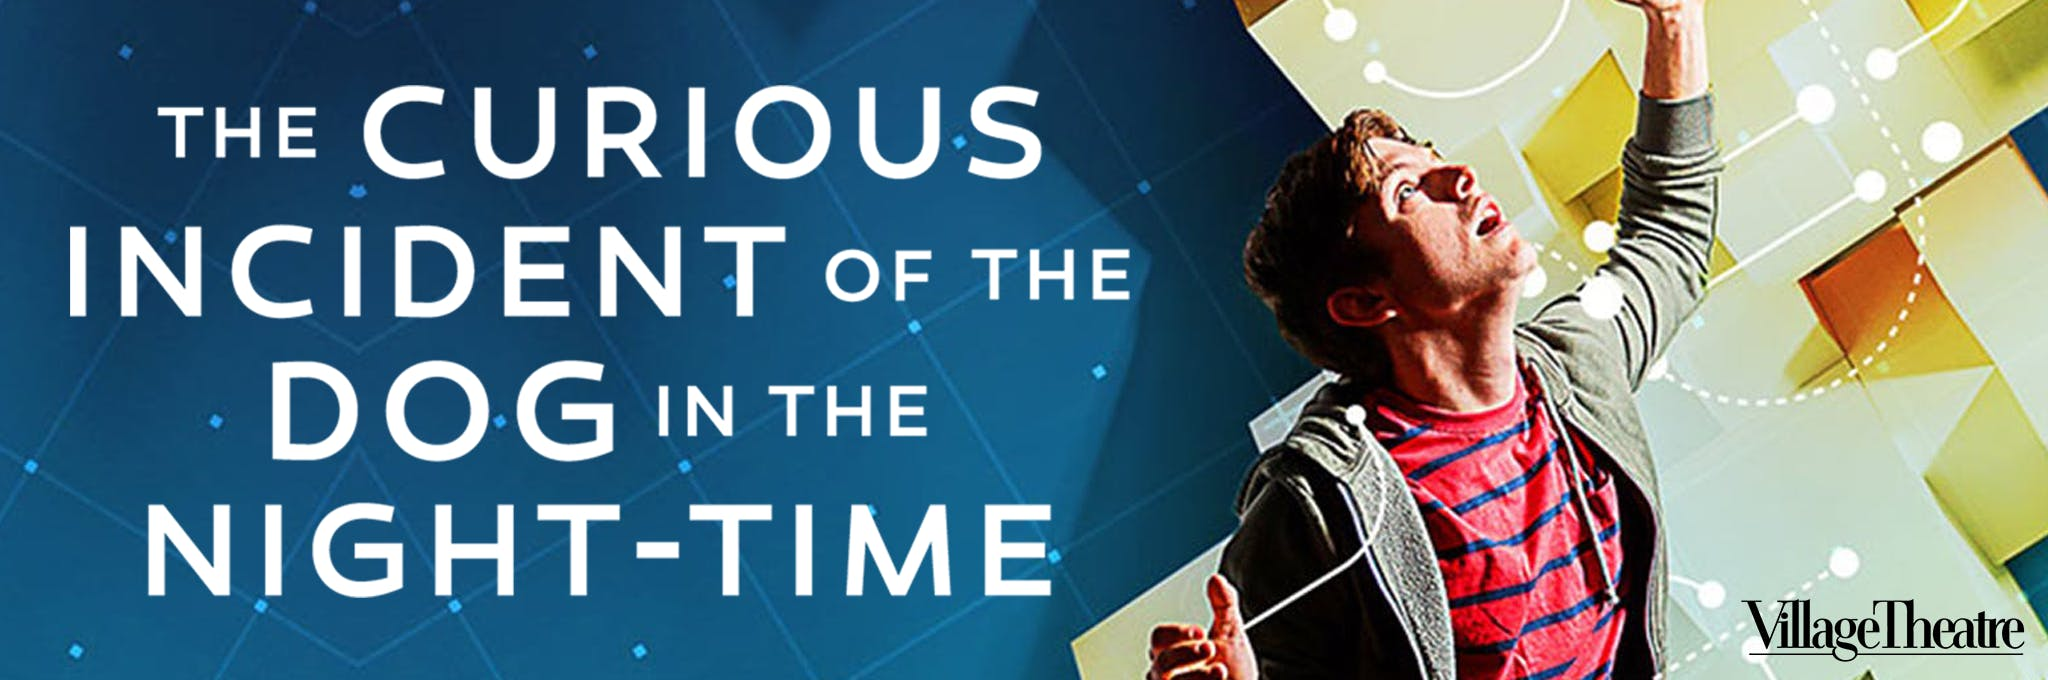 The Curious Incident of the Dog in the Night-Time - Everett Logo